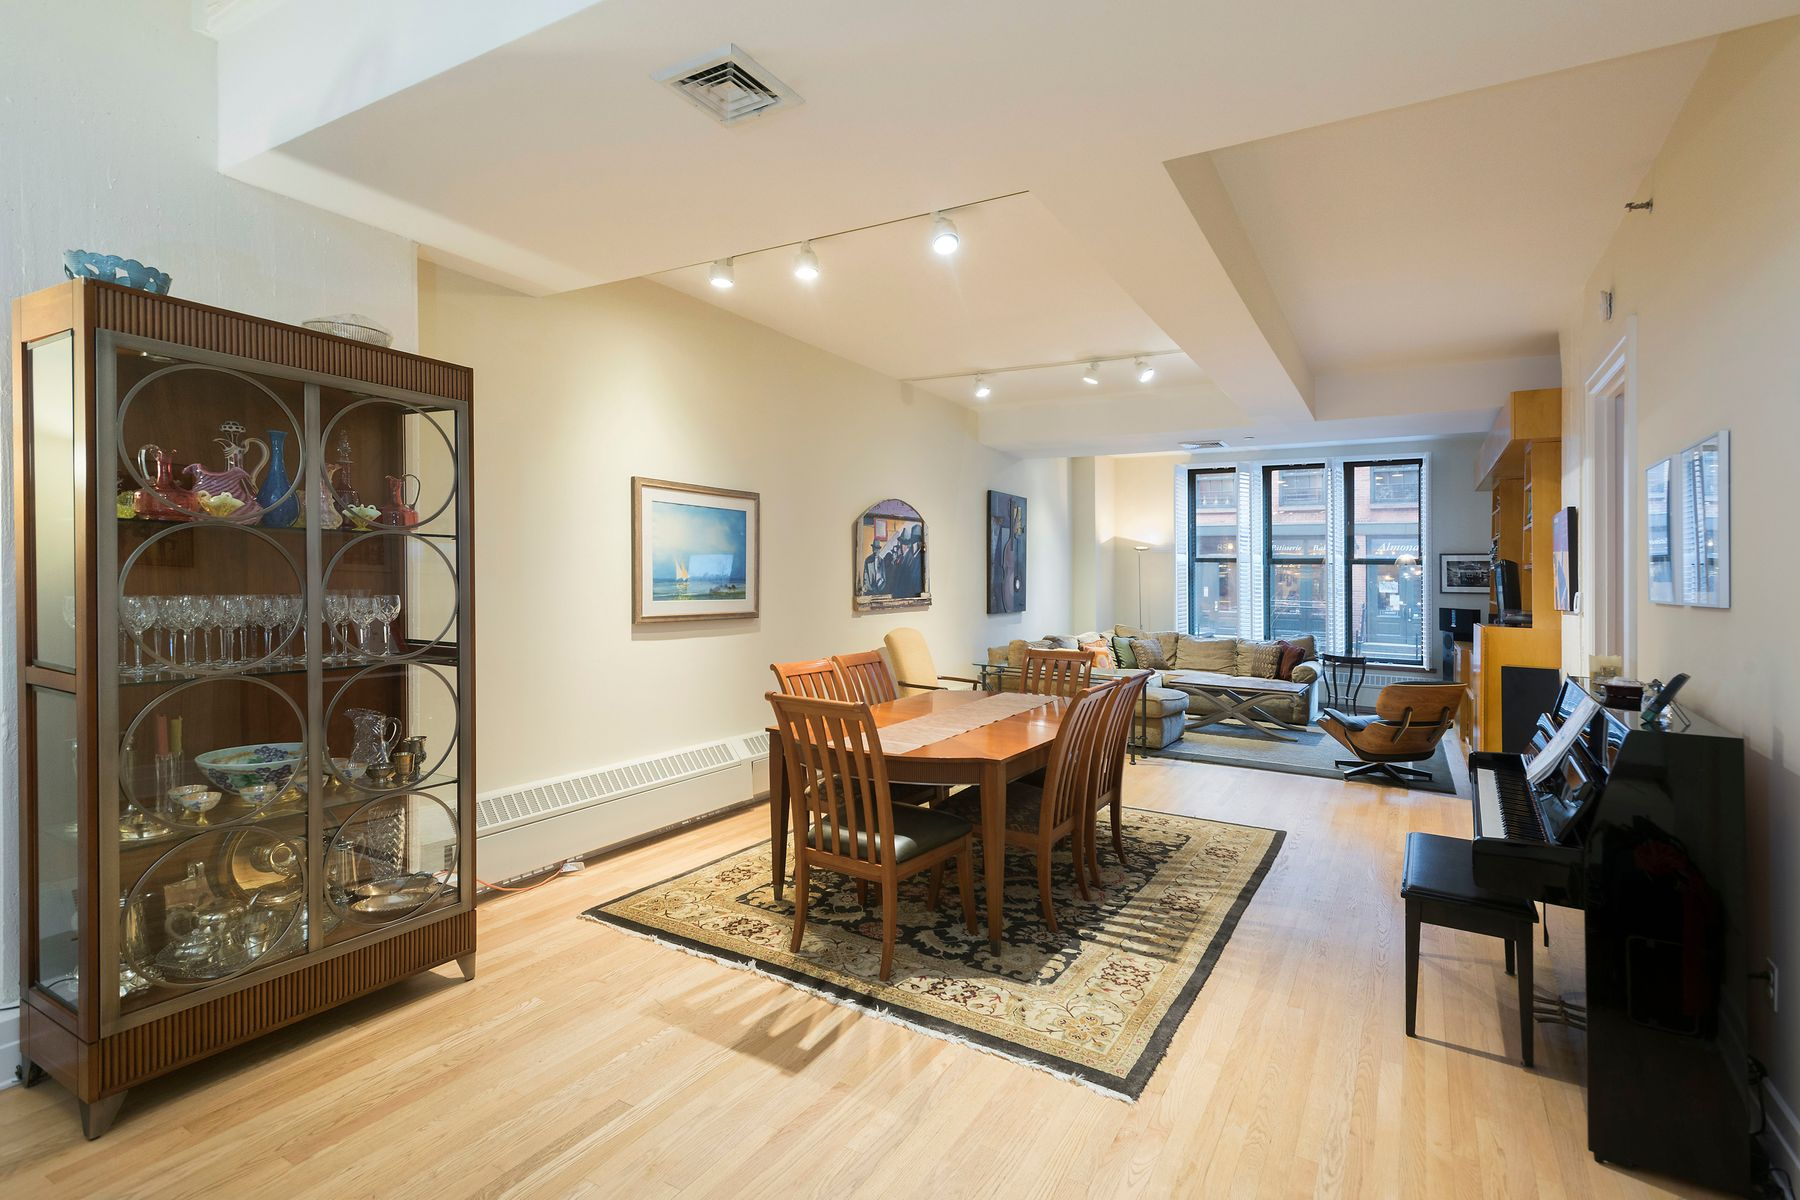 Condominiums for Sale at Room to Roam, Incredible Home 30 Main Street Apt 2G Brooklyn, New York 11201 United States